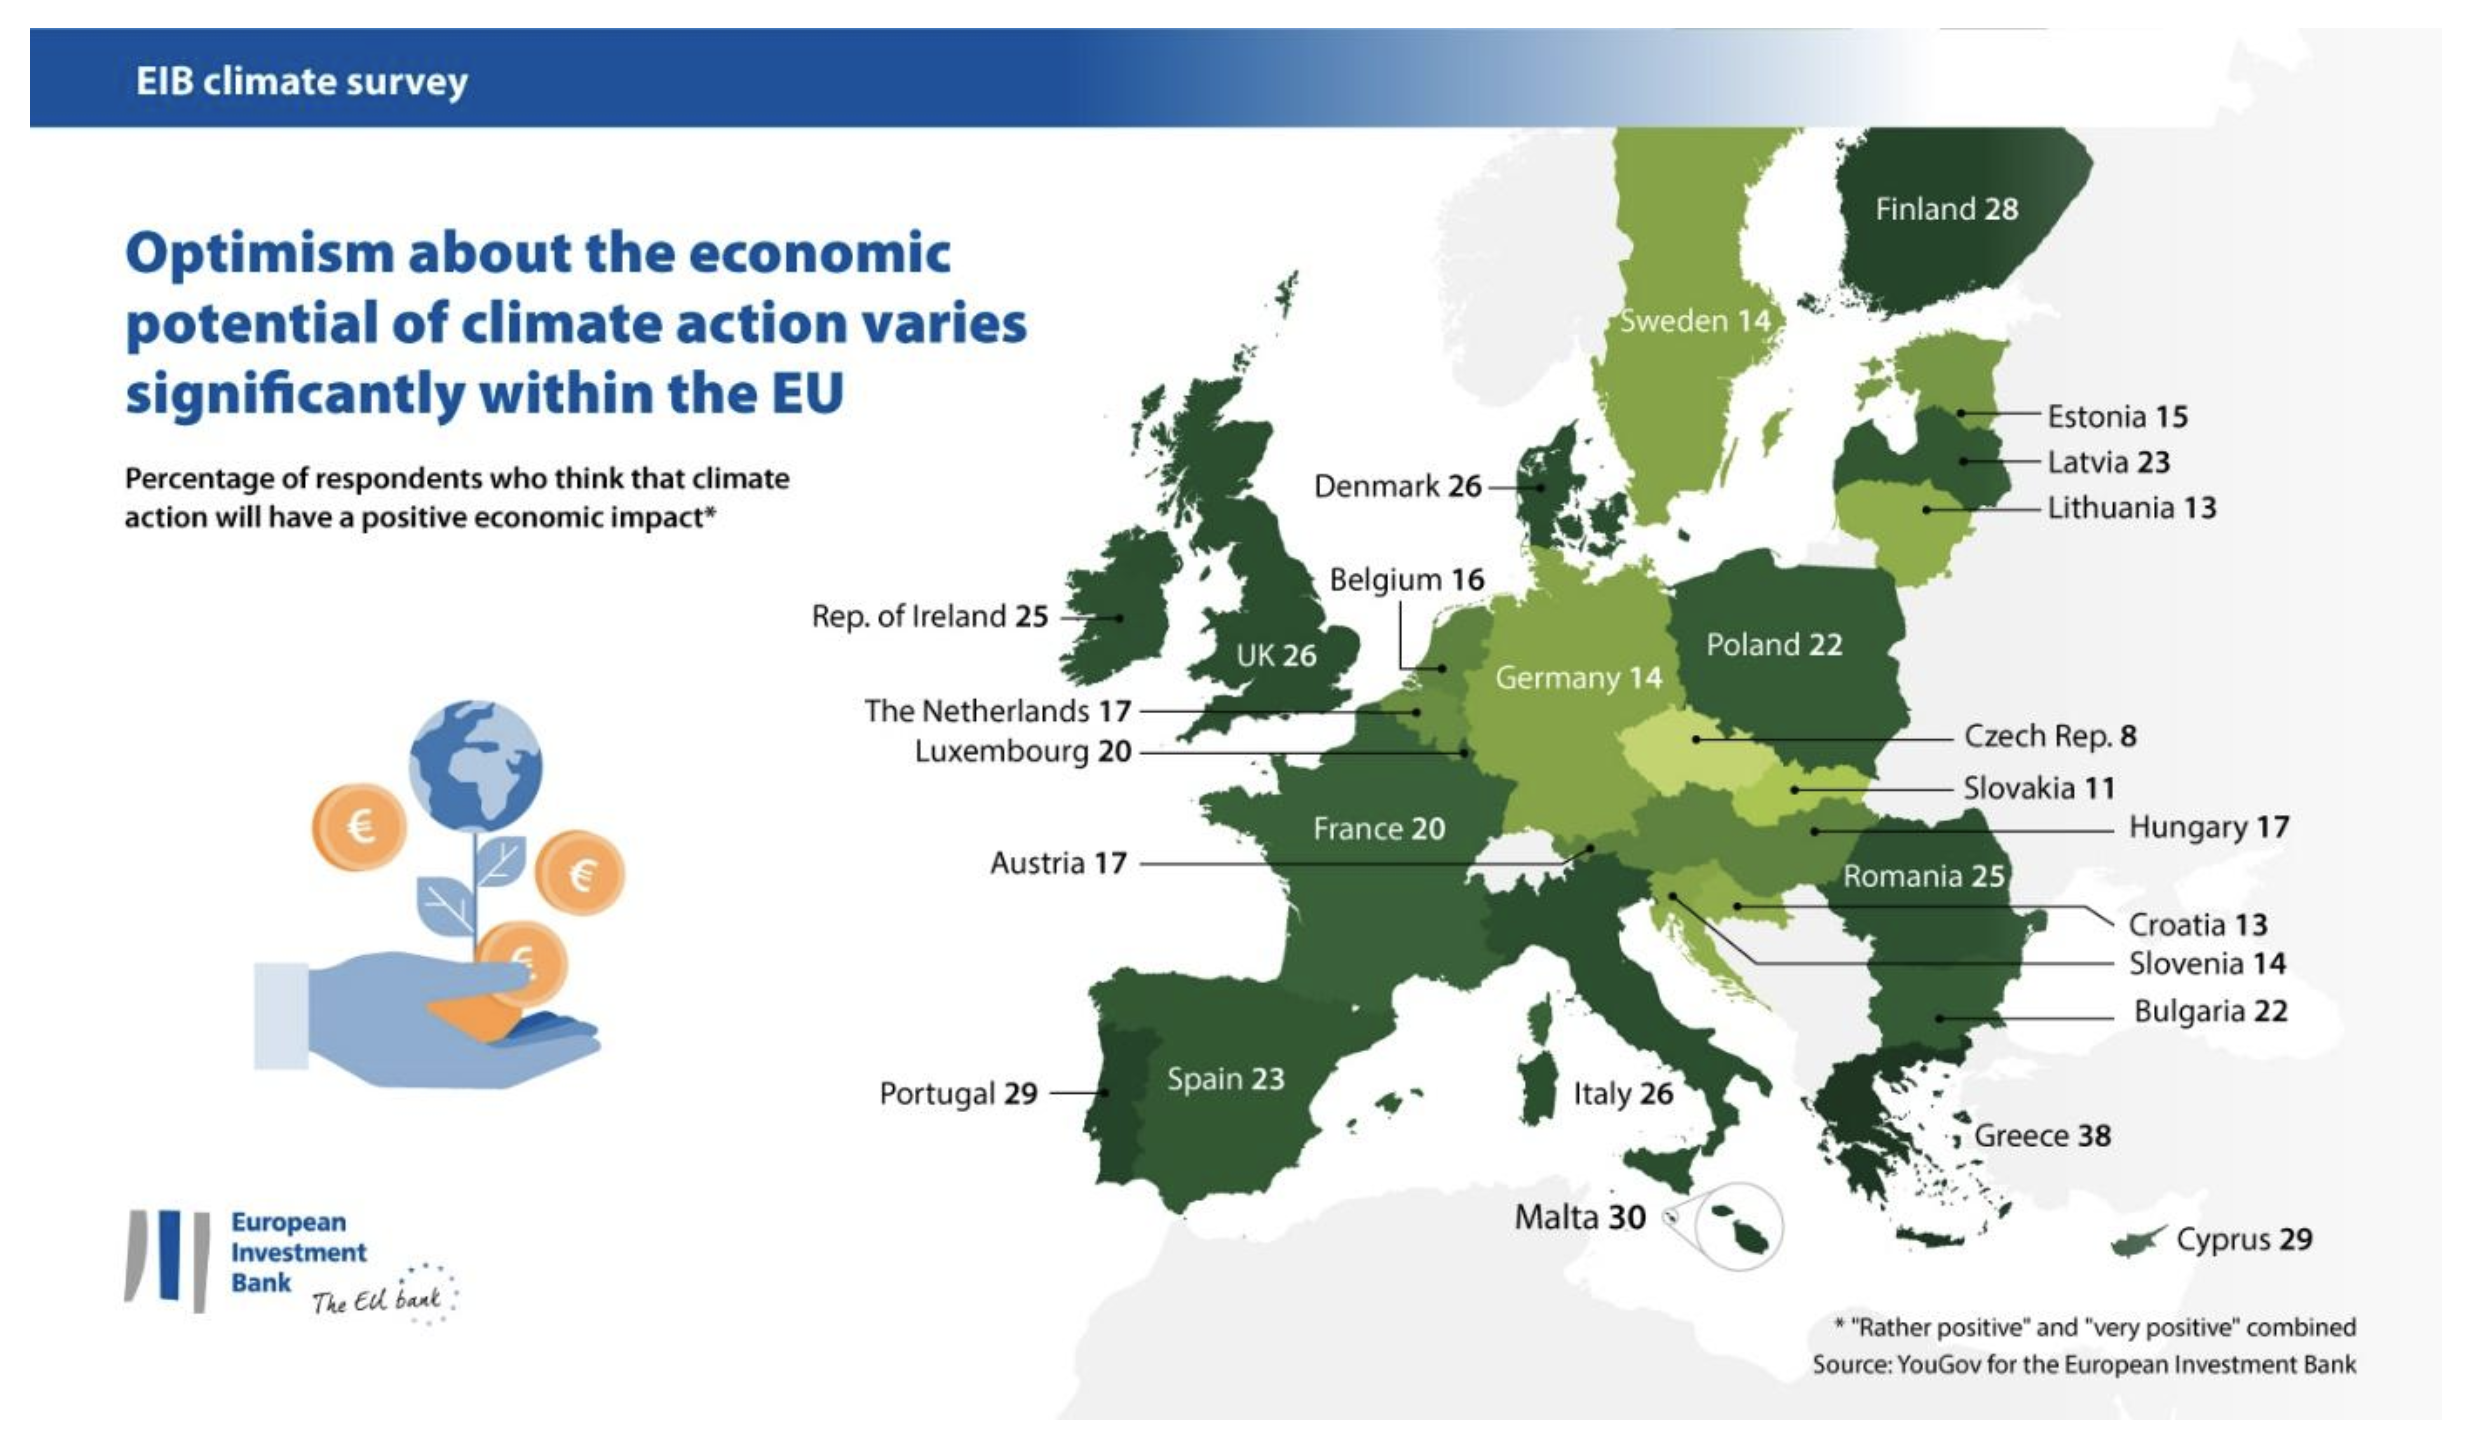 Levels of optimism vary widely across the EU